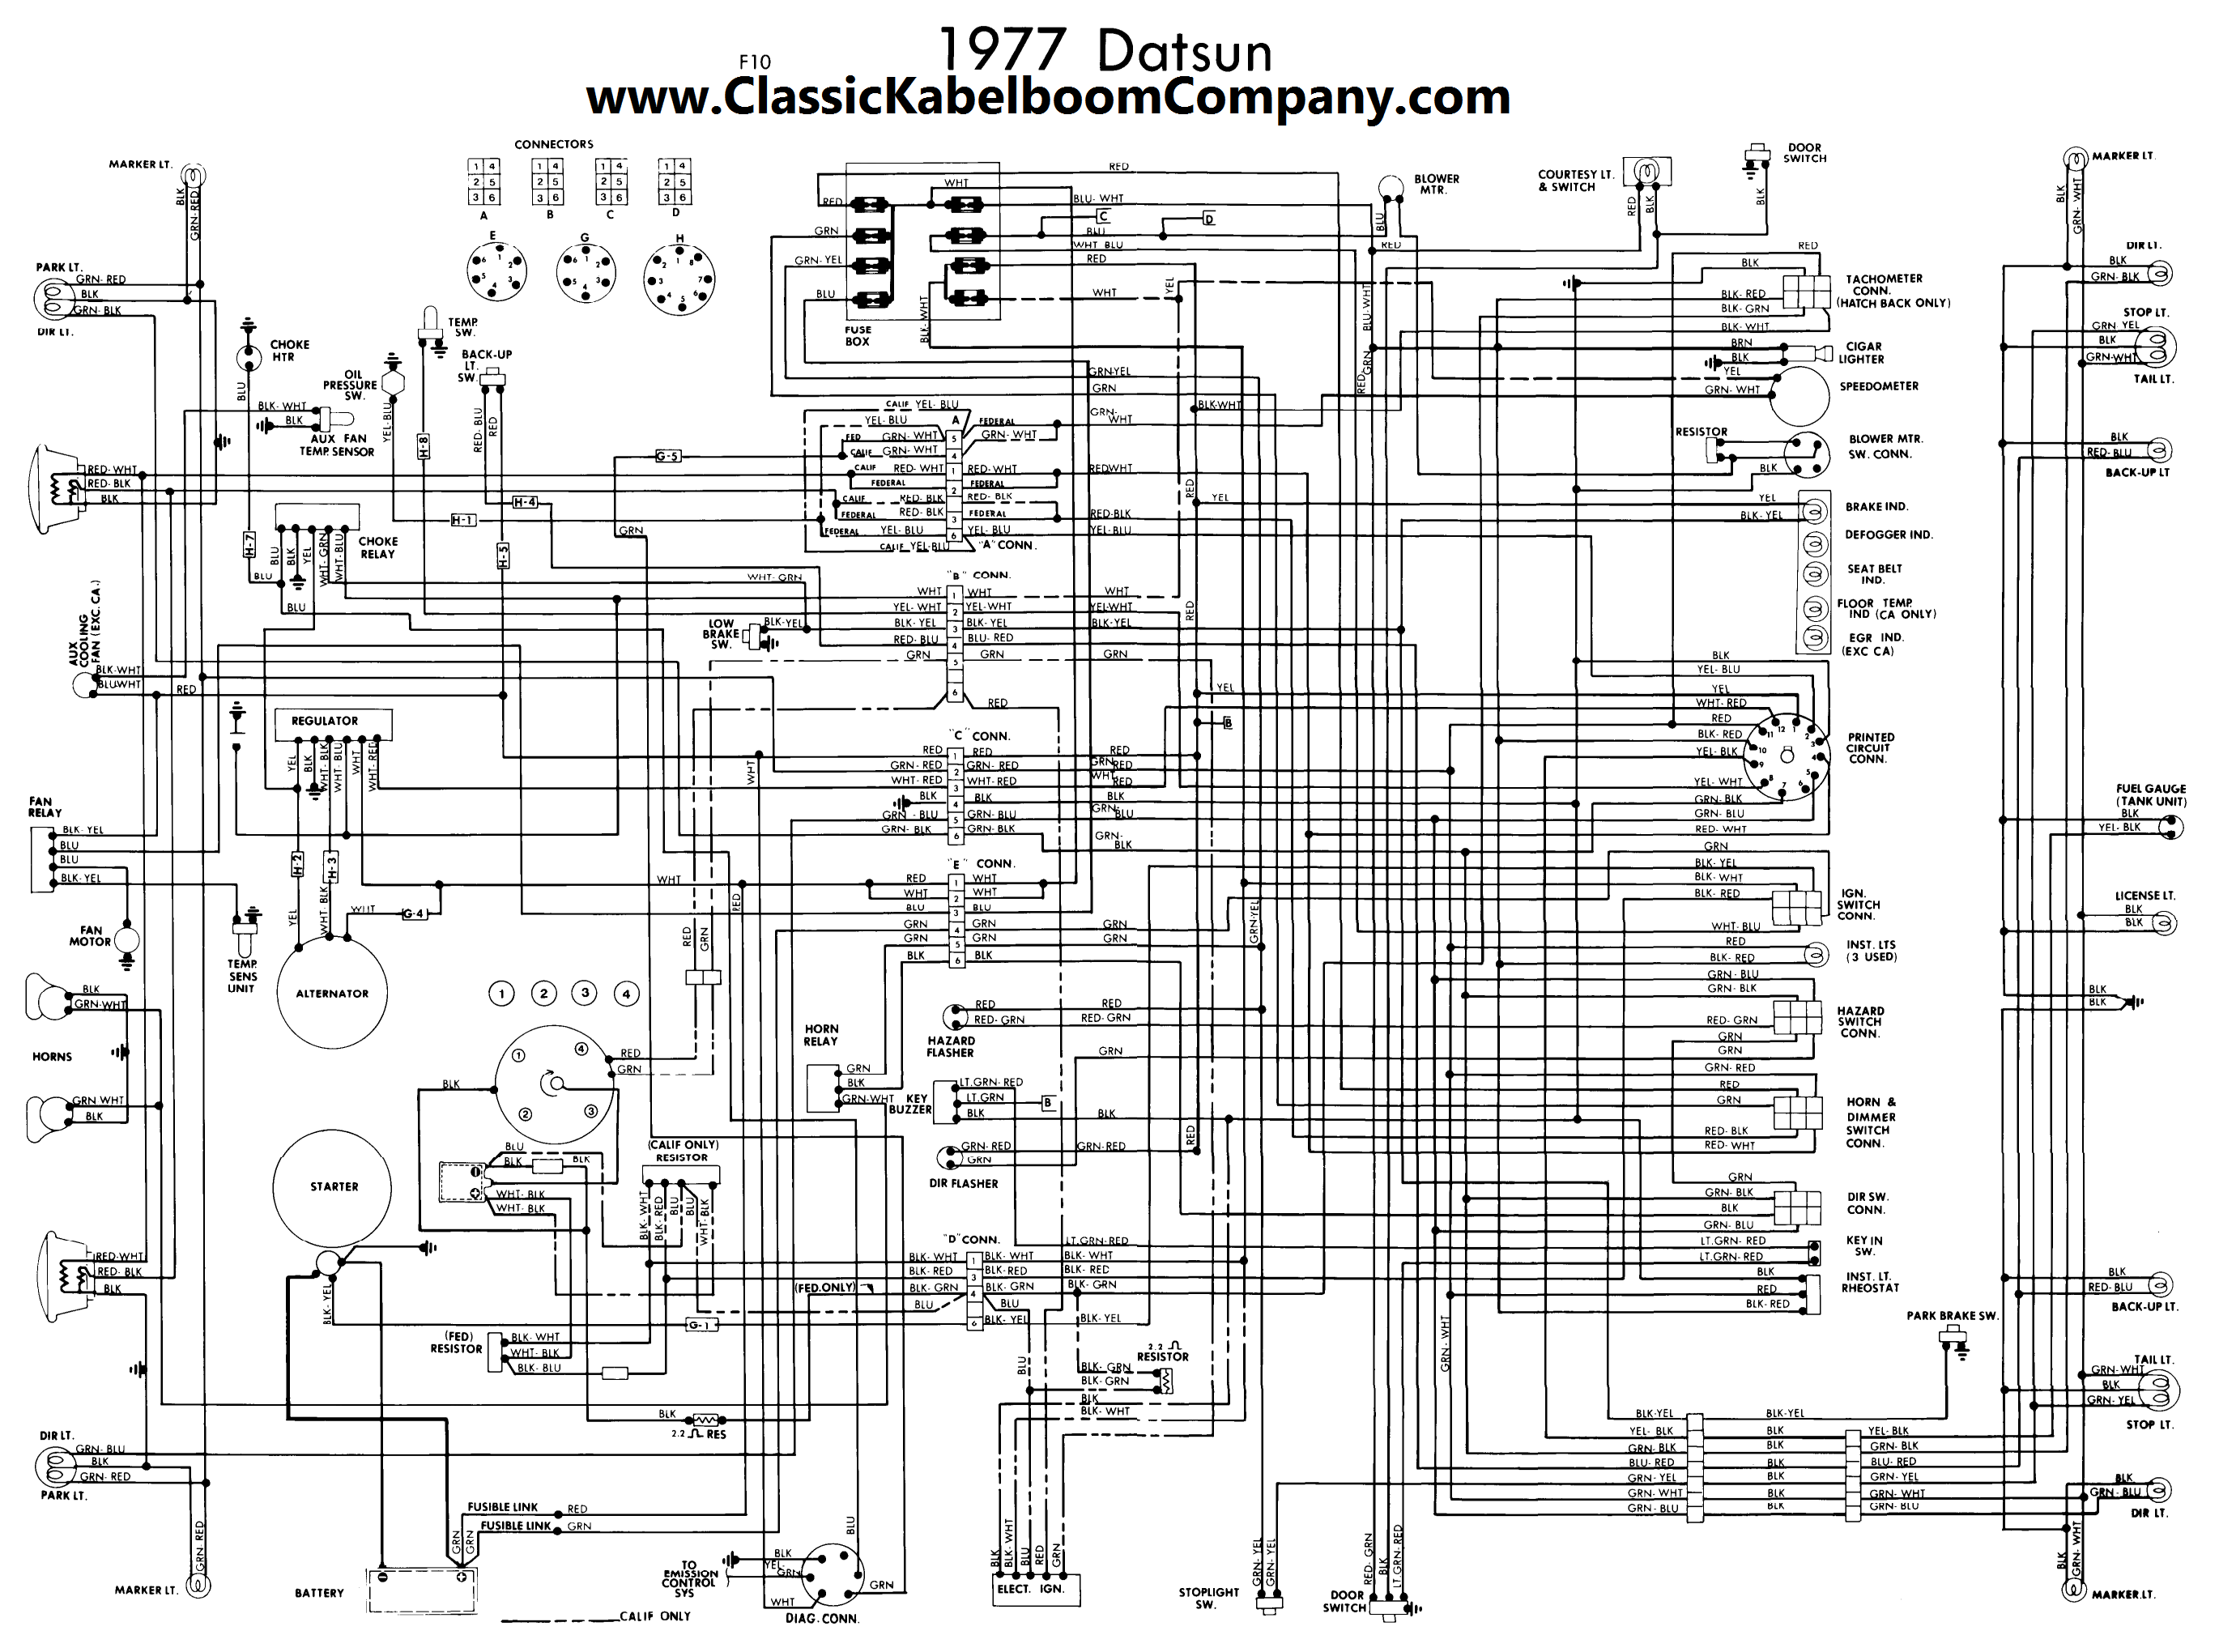 Black Interior Vinyl Replacement Kit 1975 78 280z besides Viewtopic additionally Wiring Diagram Datsun in addition Datsun 1600 Starter Wiring Diagram together with Ford Oem Abs Control Module Al8z2c219a Image 1 I1897585. on datsun 1600 roadster